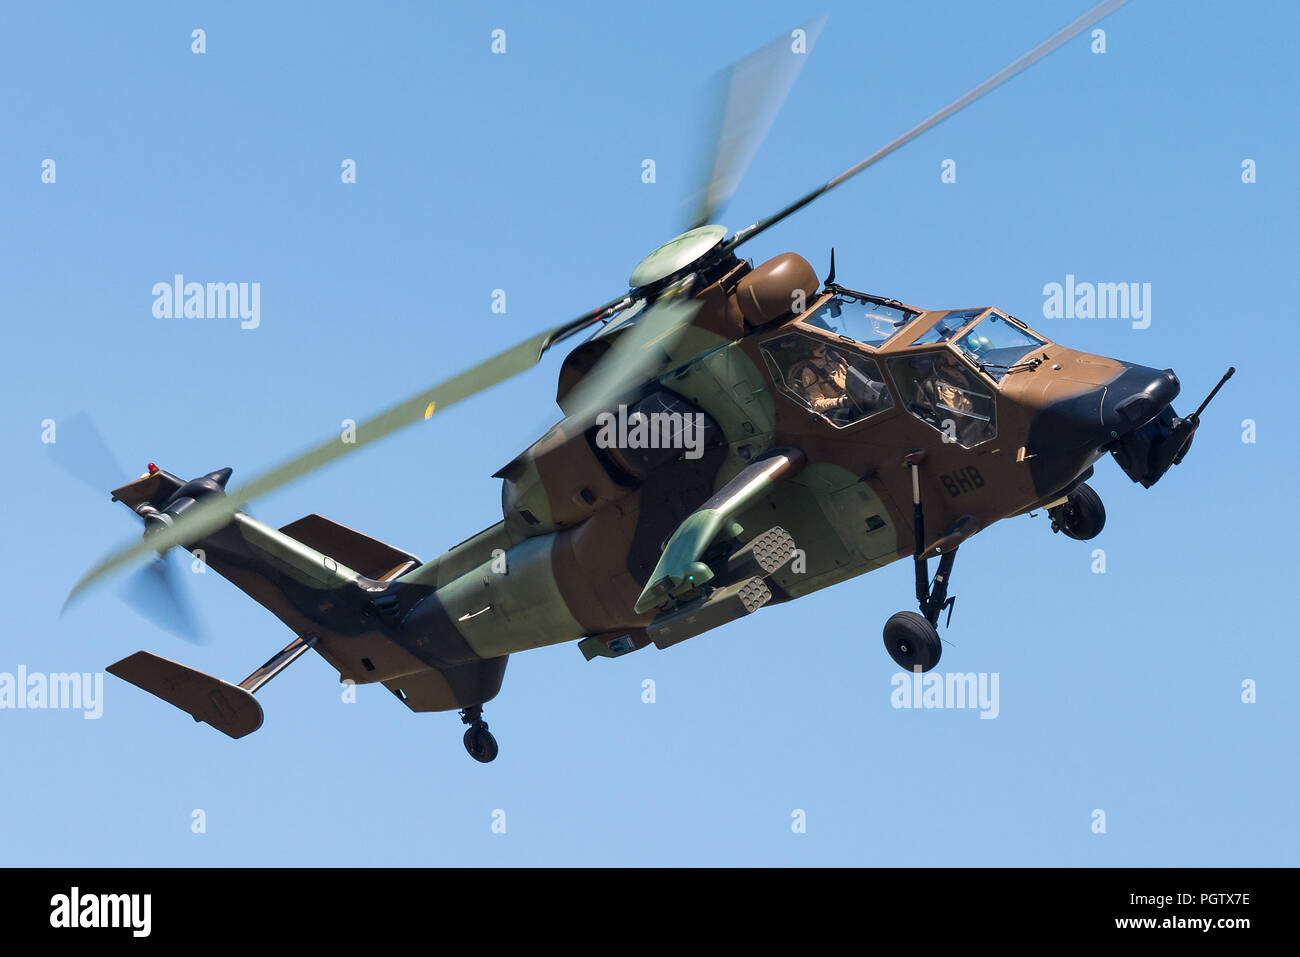 A Eurocopter Tiger attack helicopter from the 5th Combat Helicopter Regimen of the French Army. - Stock Image